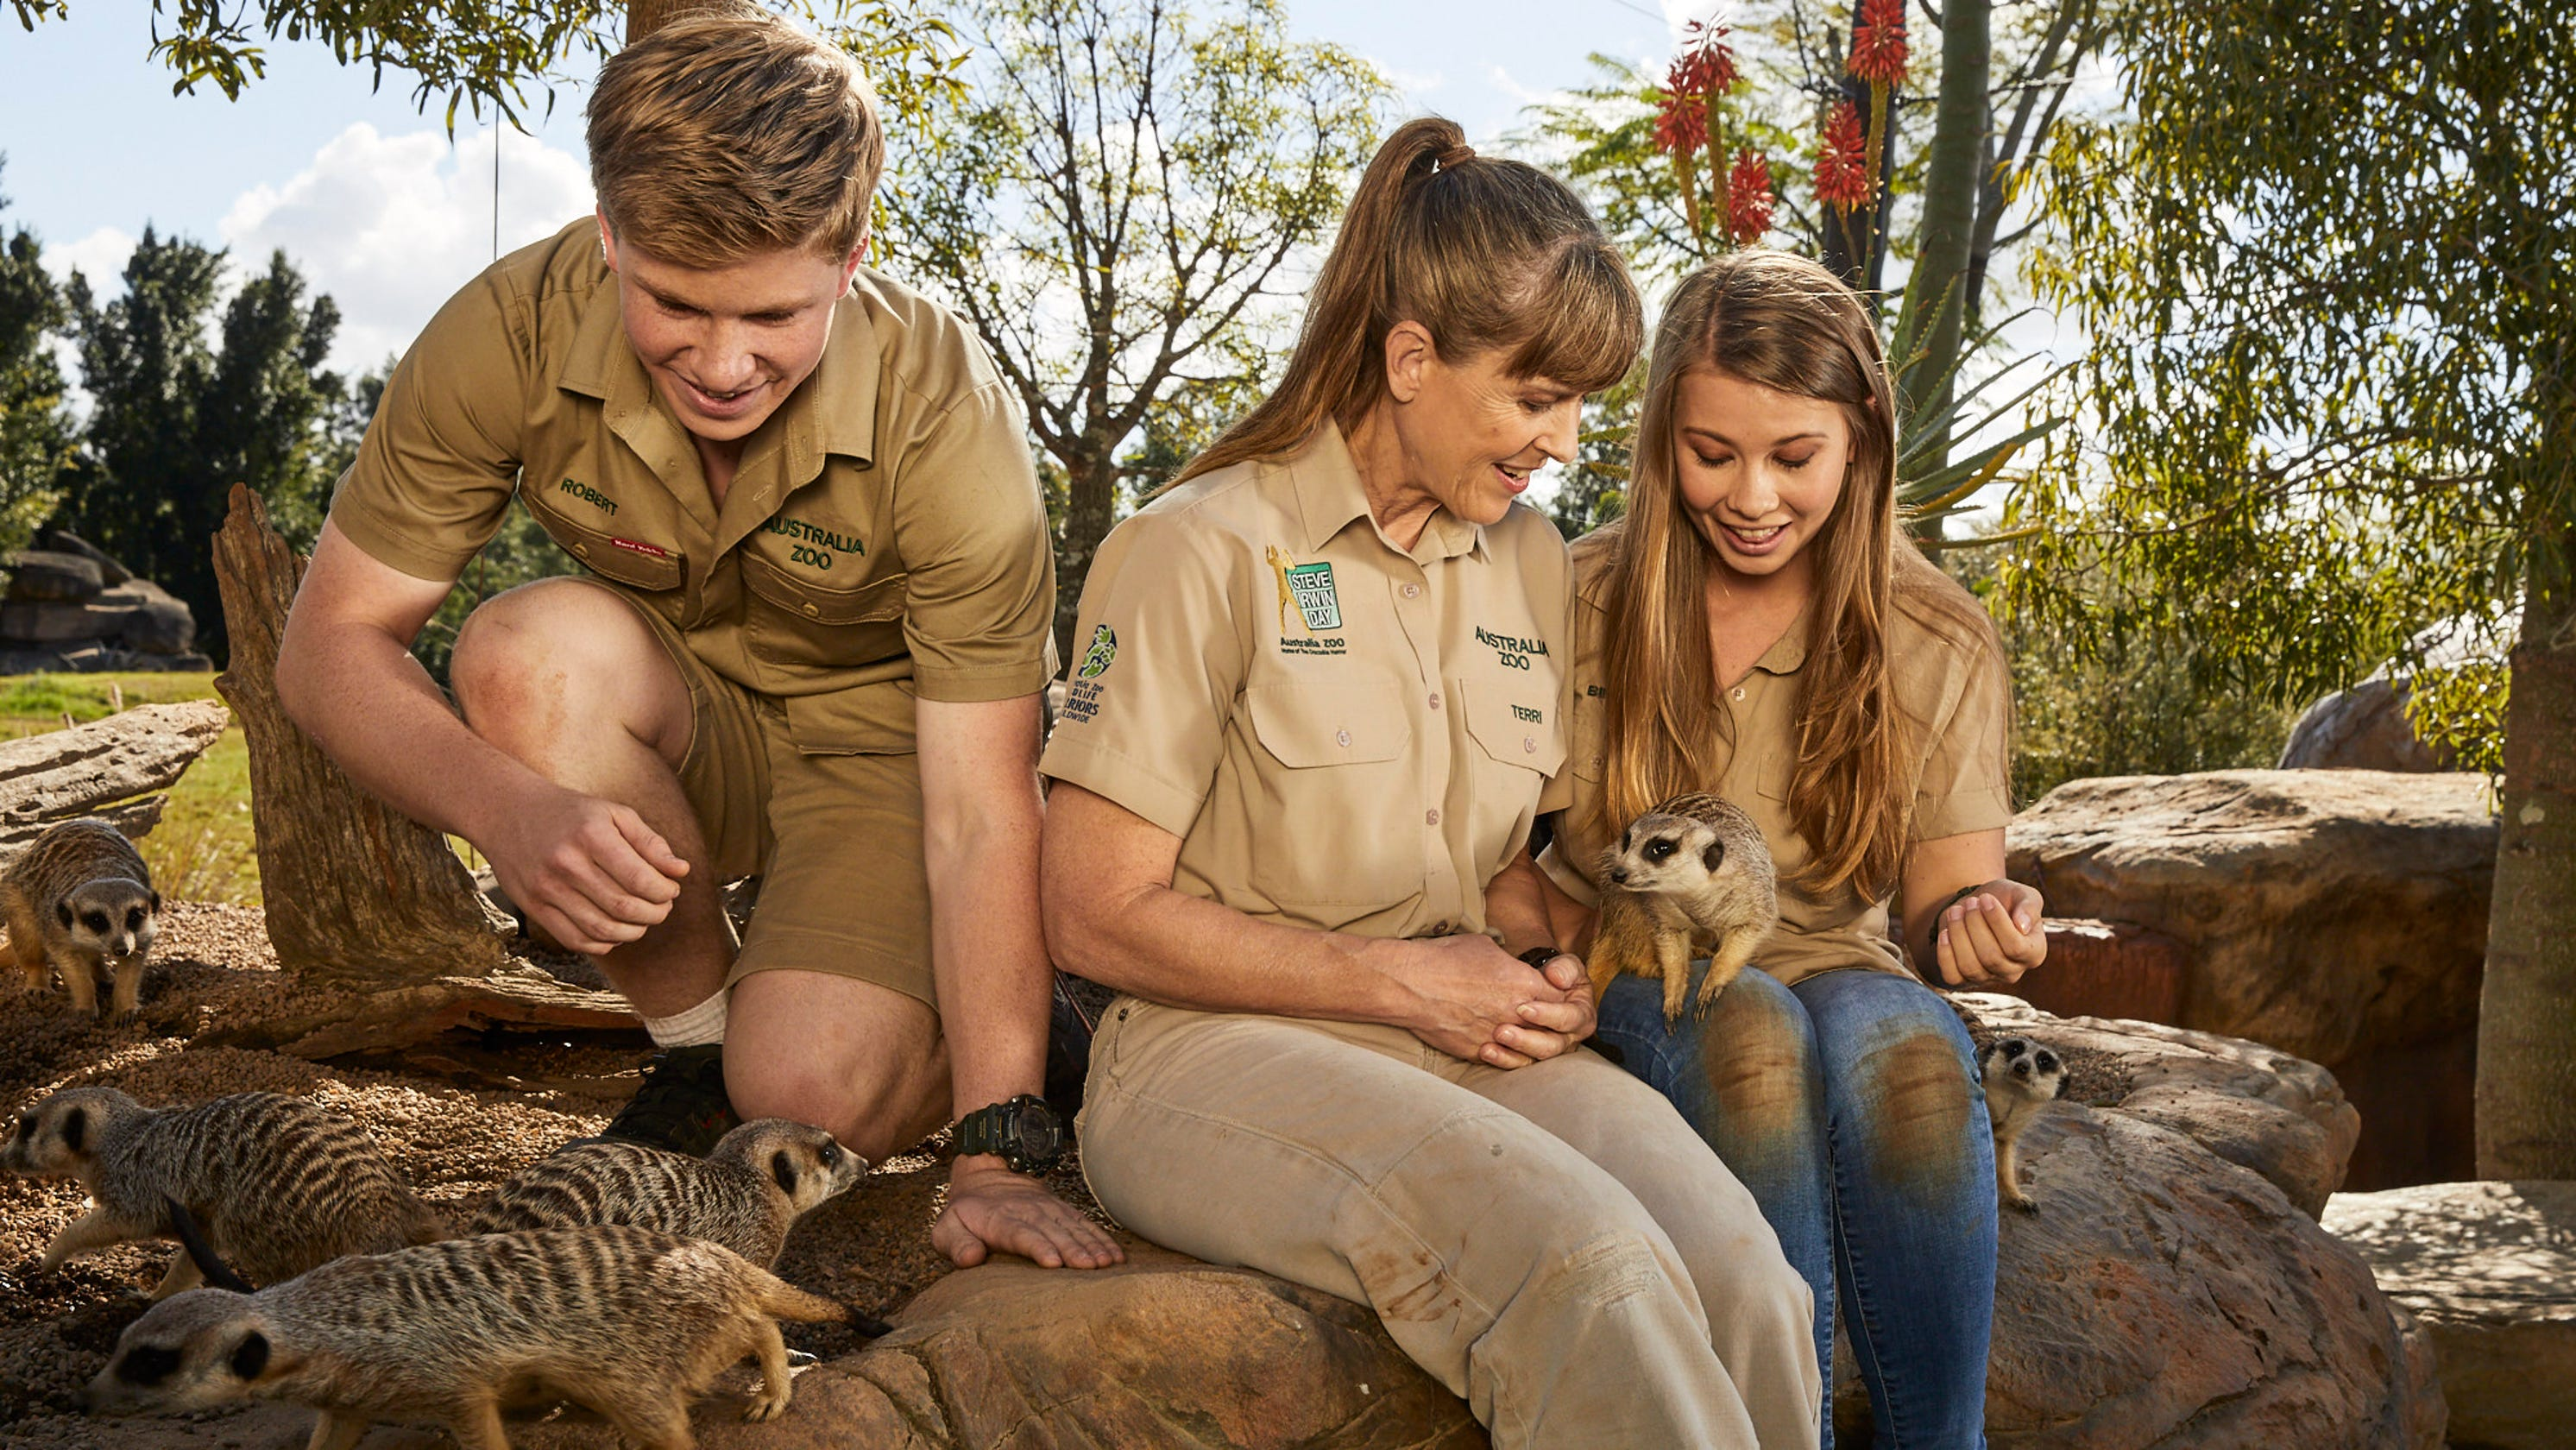 How to travel like Steve Irwin's family: See wildlife responsibly on these trips